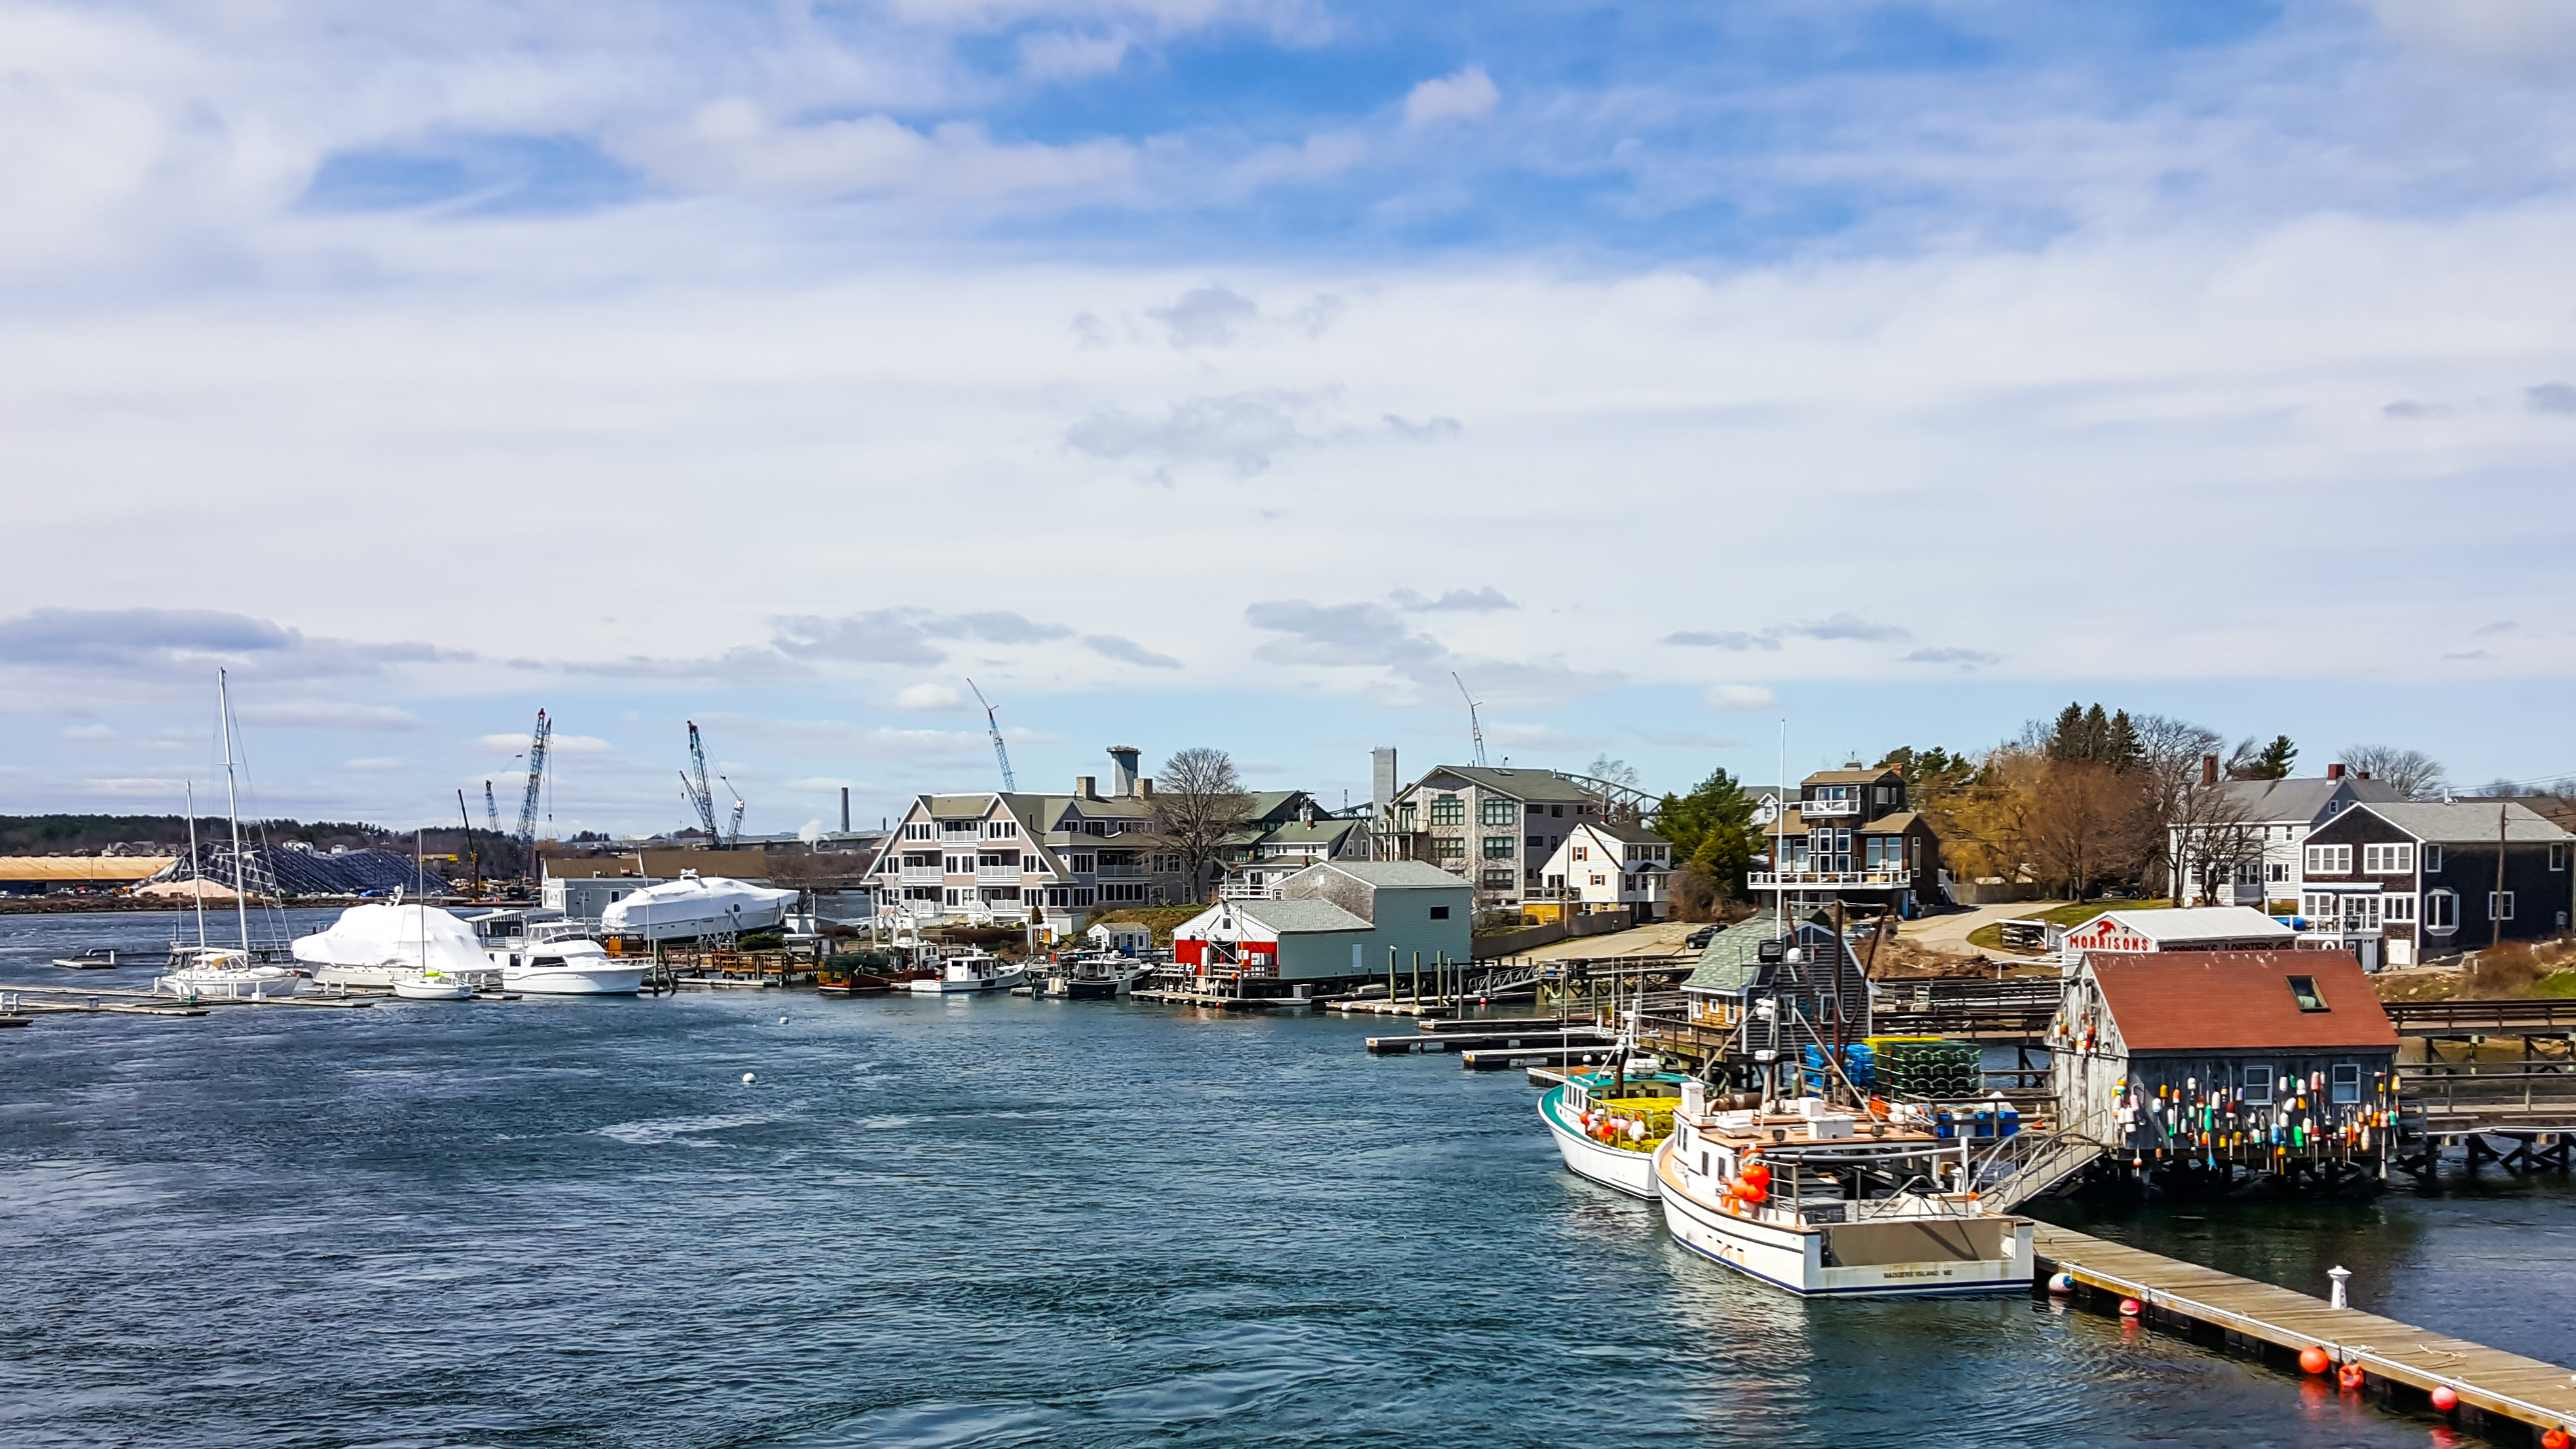 View from Memorial Bridge, leaving Portsmouth and heading towards Badger's Island and Kittery